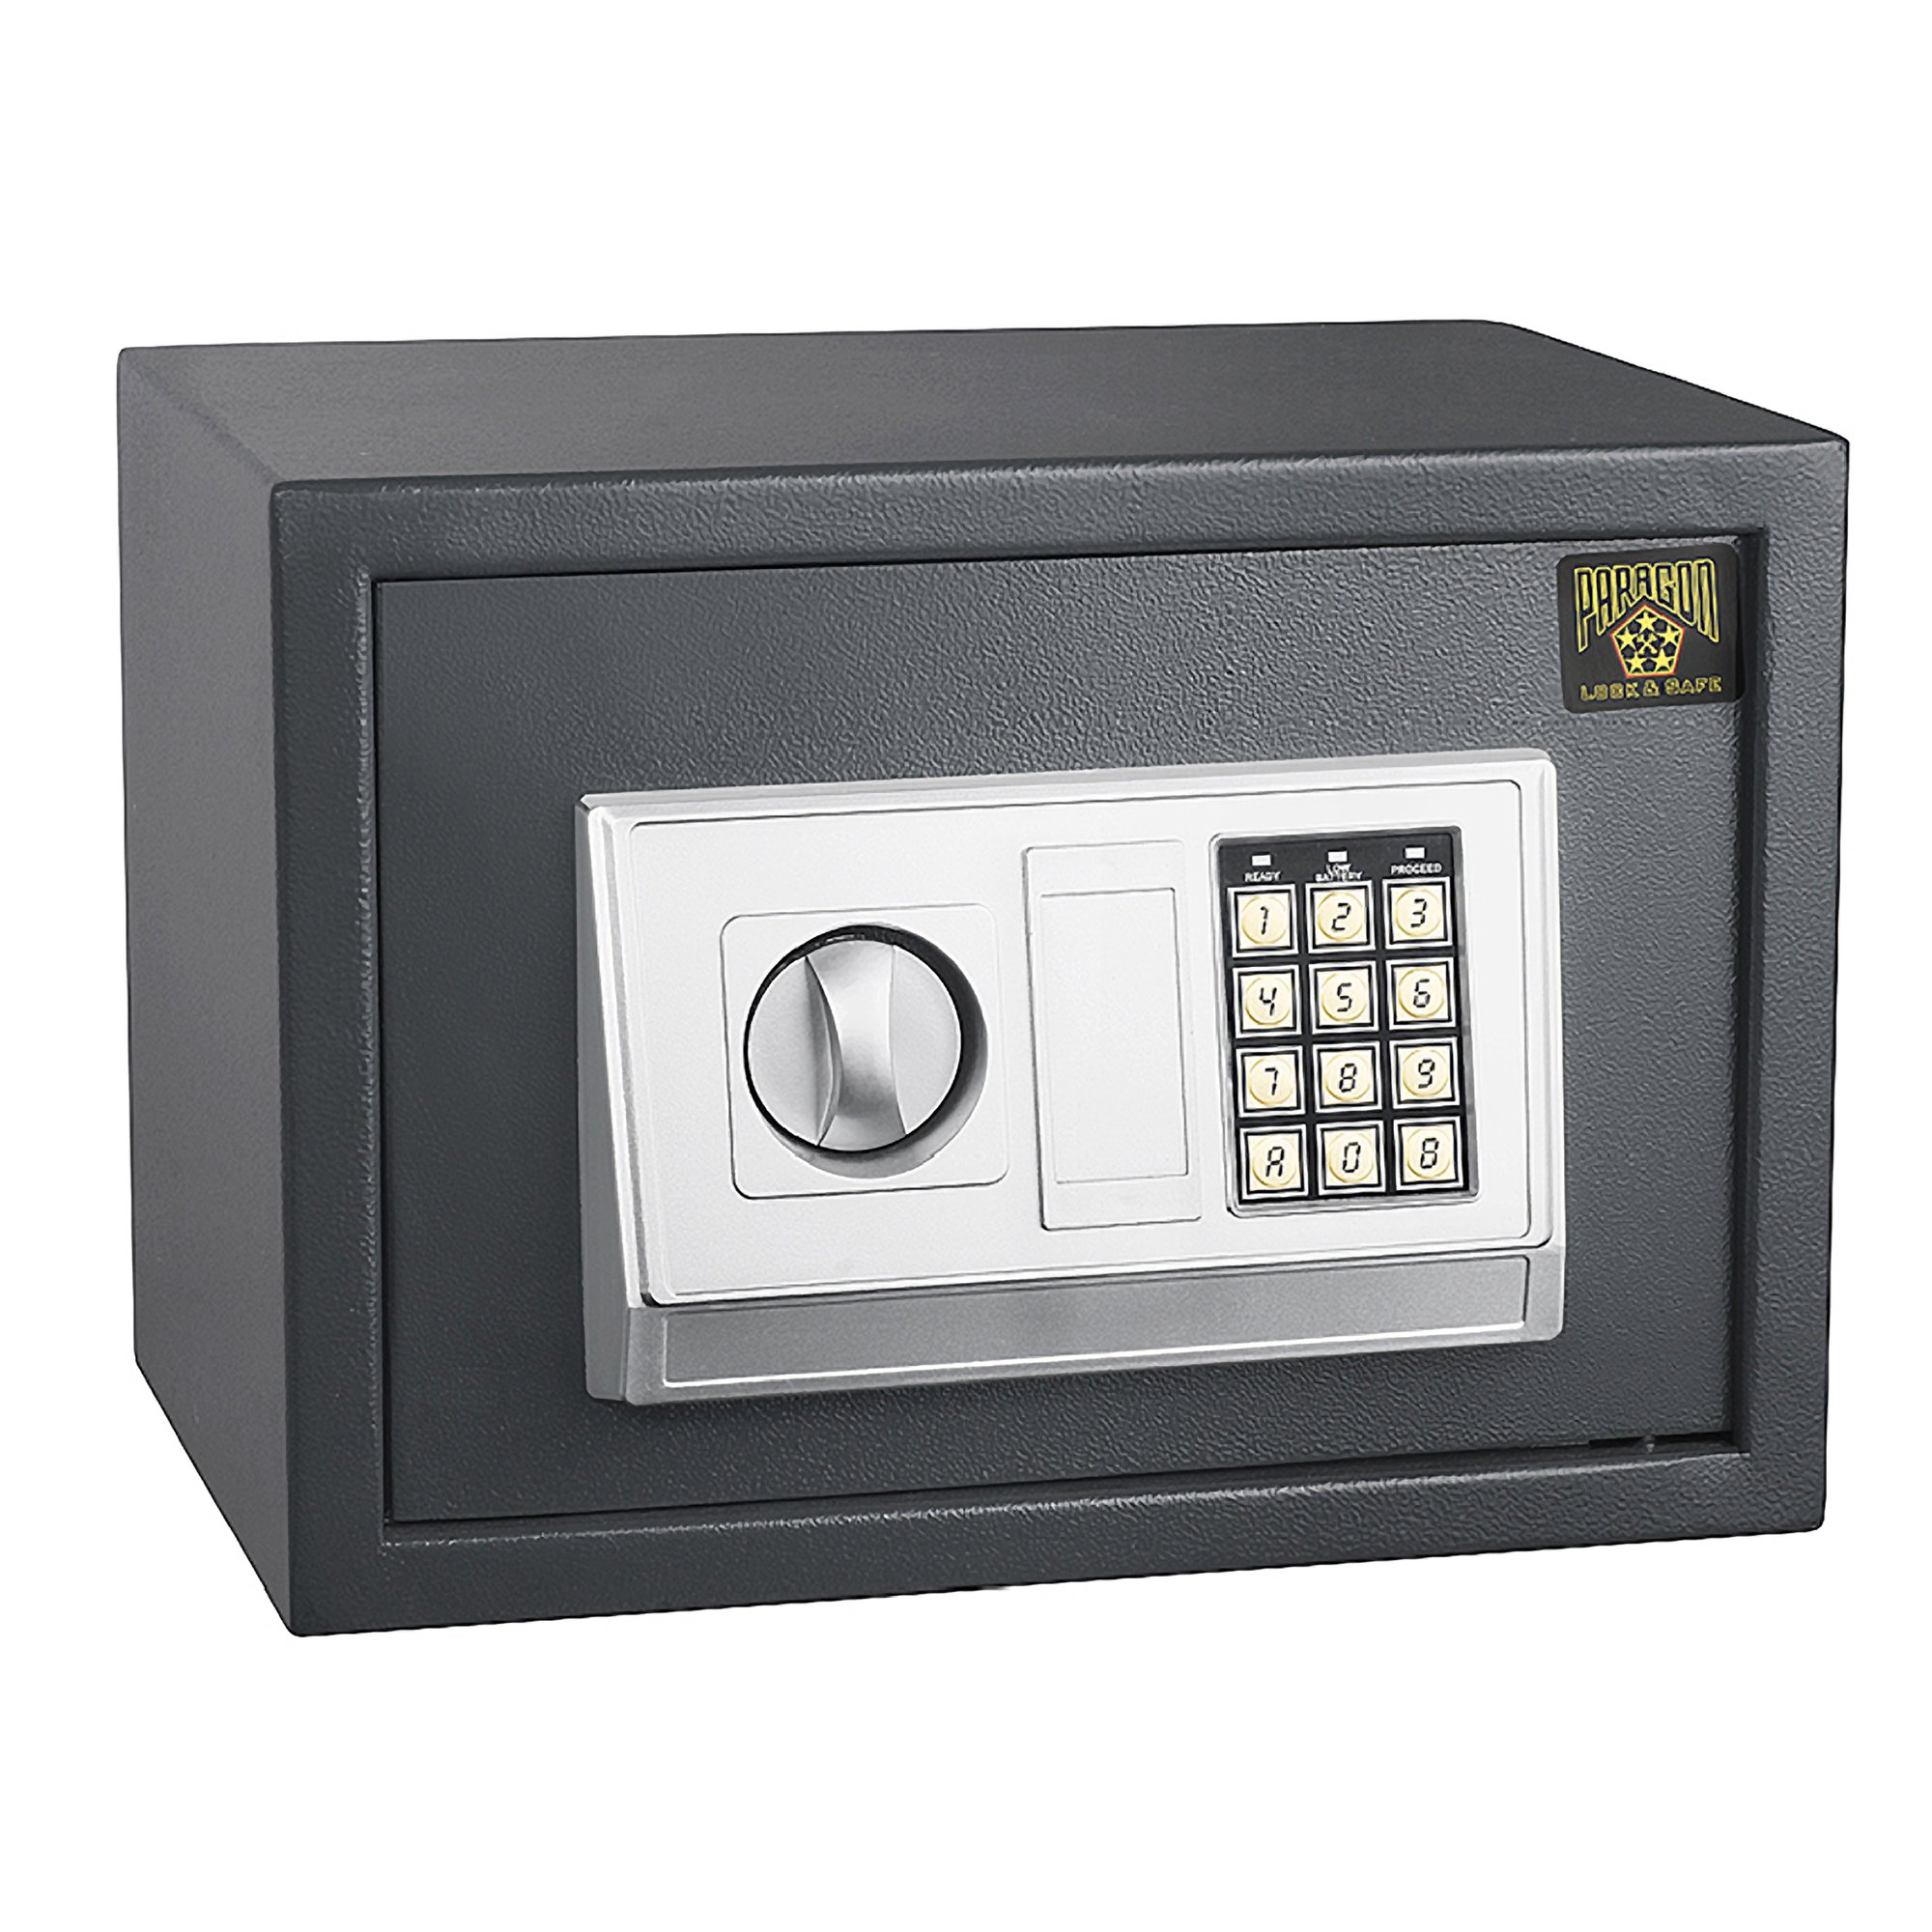 Paragon 7825 Electronic Digital .25 CF Lock and Safe Jewelery Home Security Heavy Duty